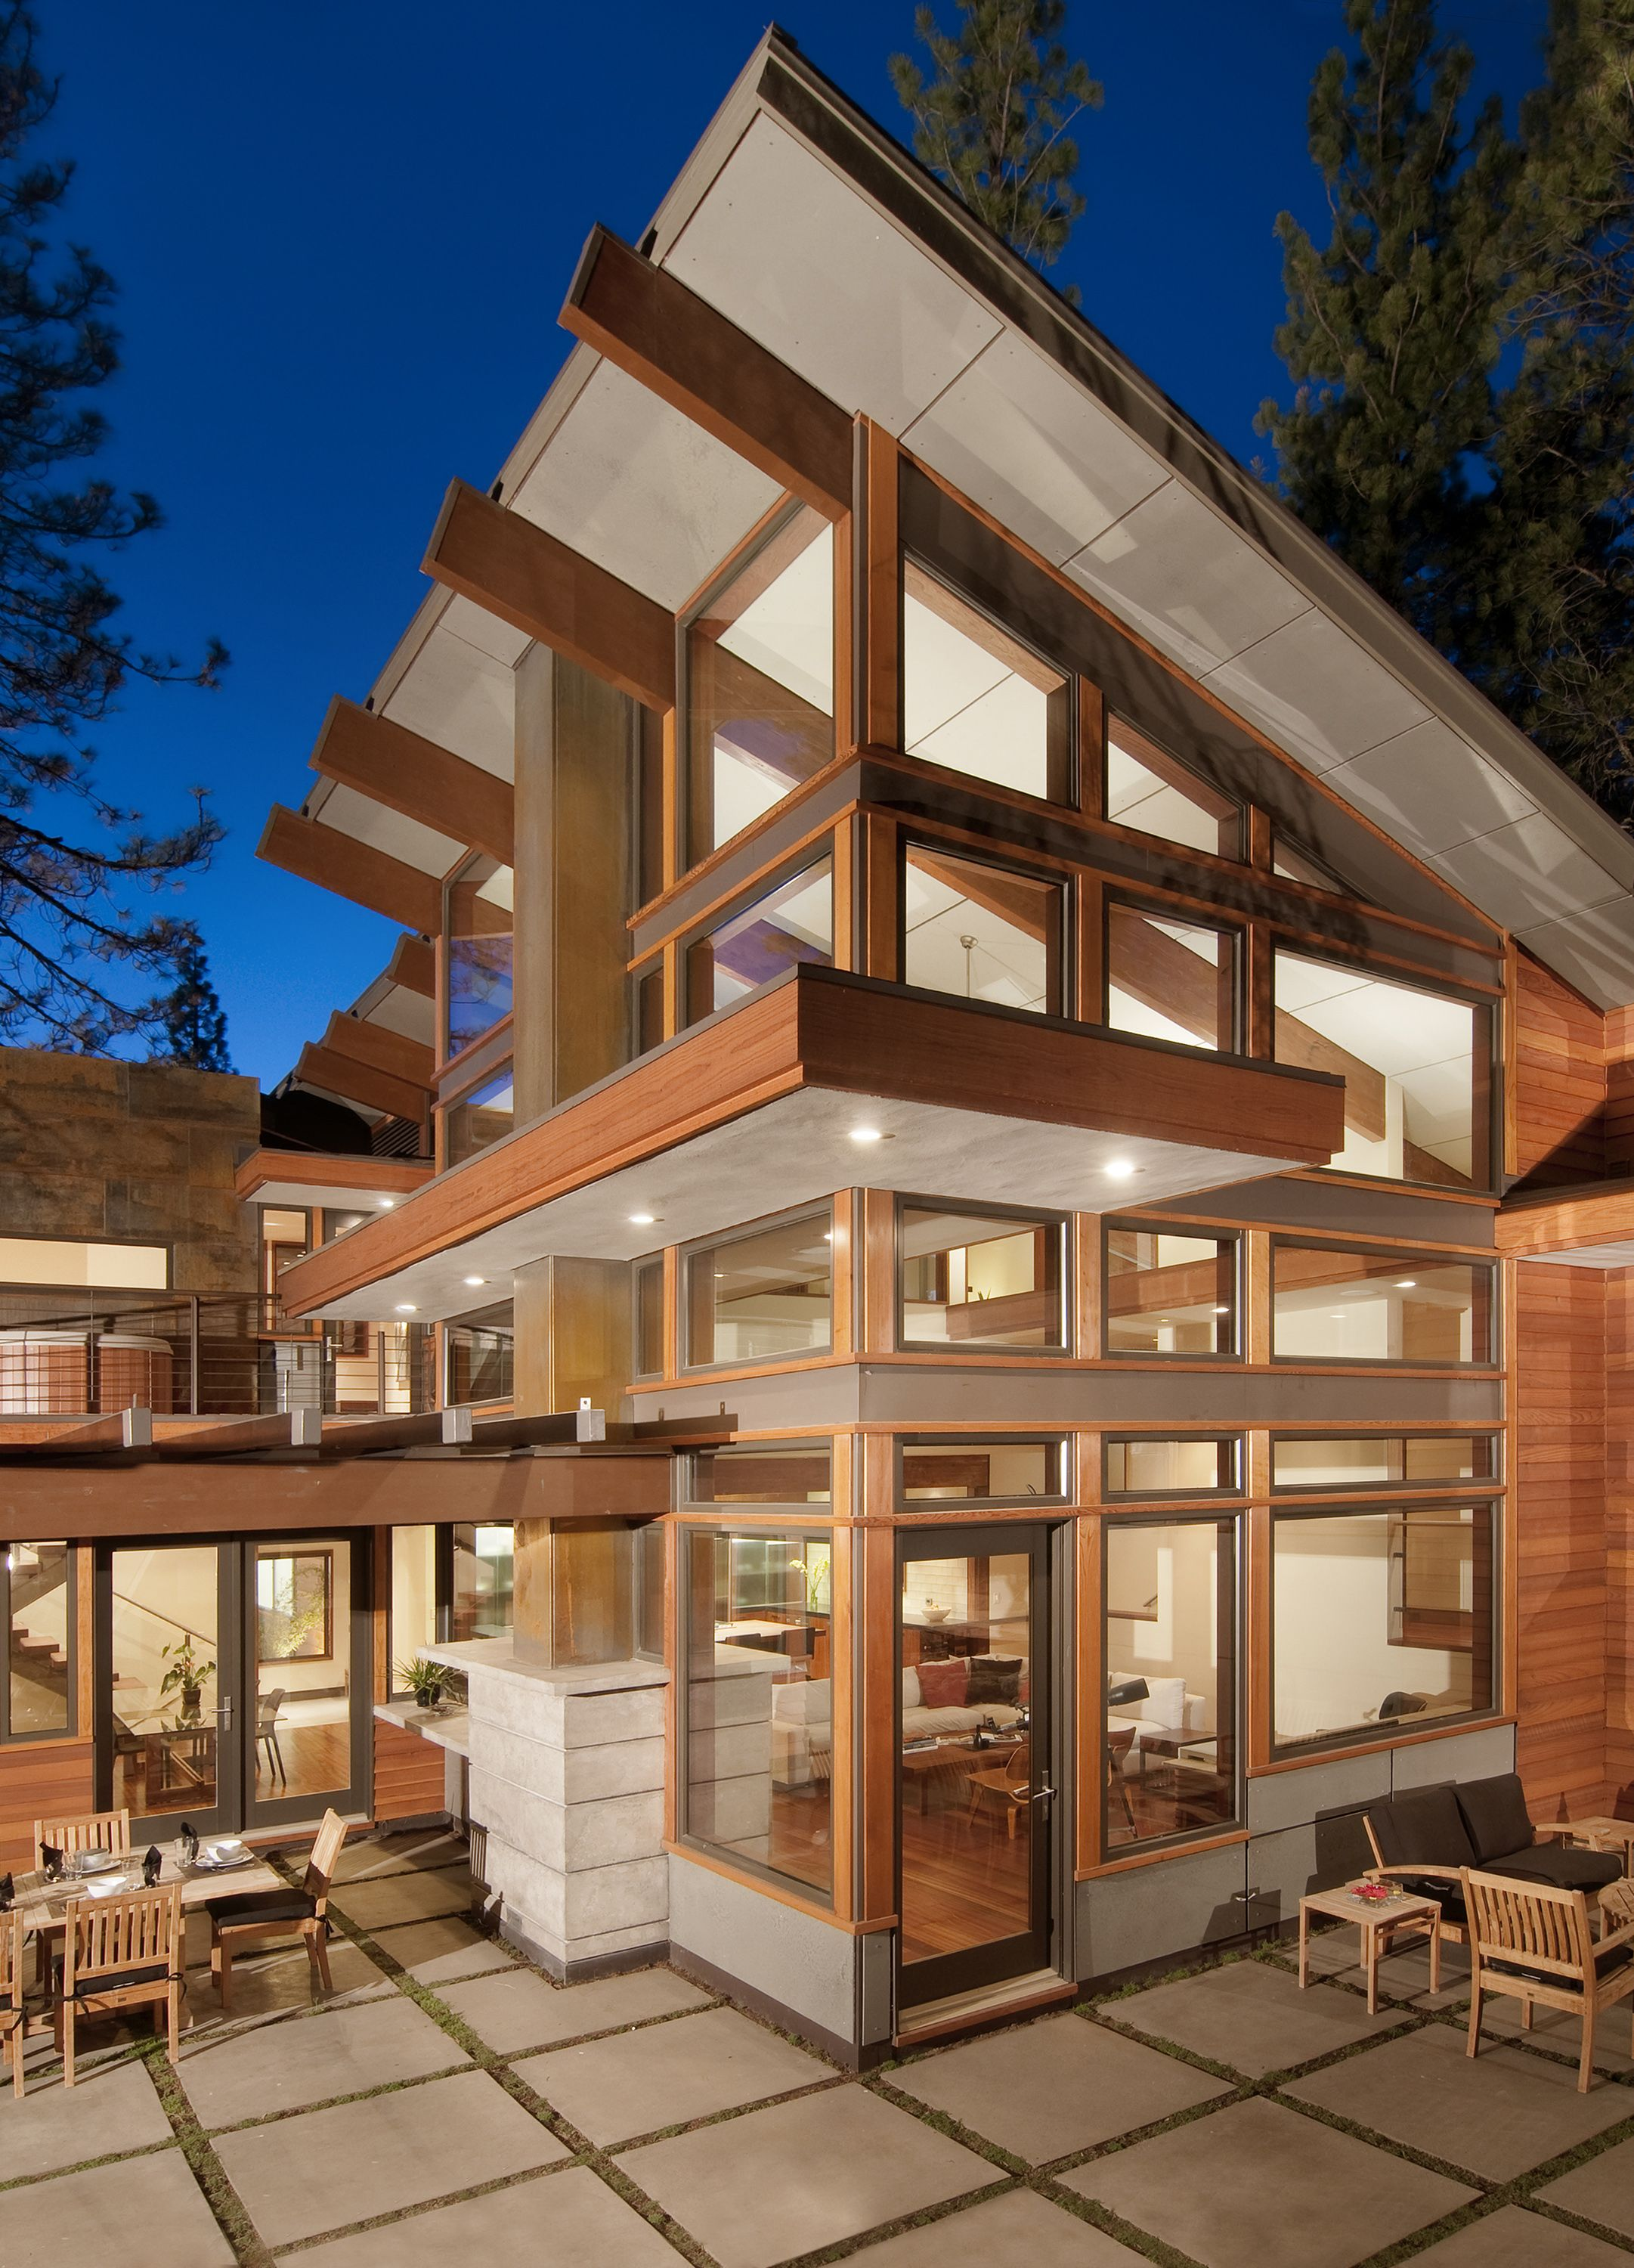 association cabin tahoe in that amenities mg realty accommodations properties park cabins store mountain rent vacation lake include home for lodging note rentals